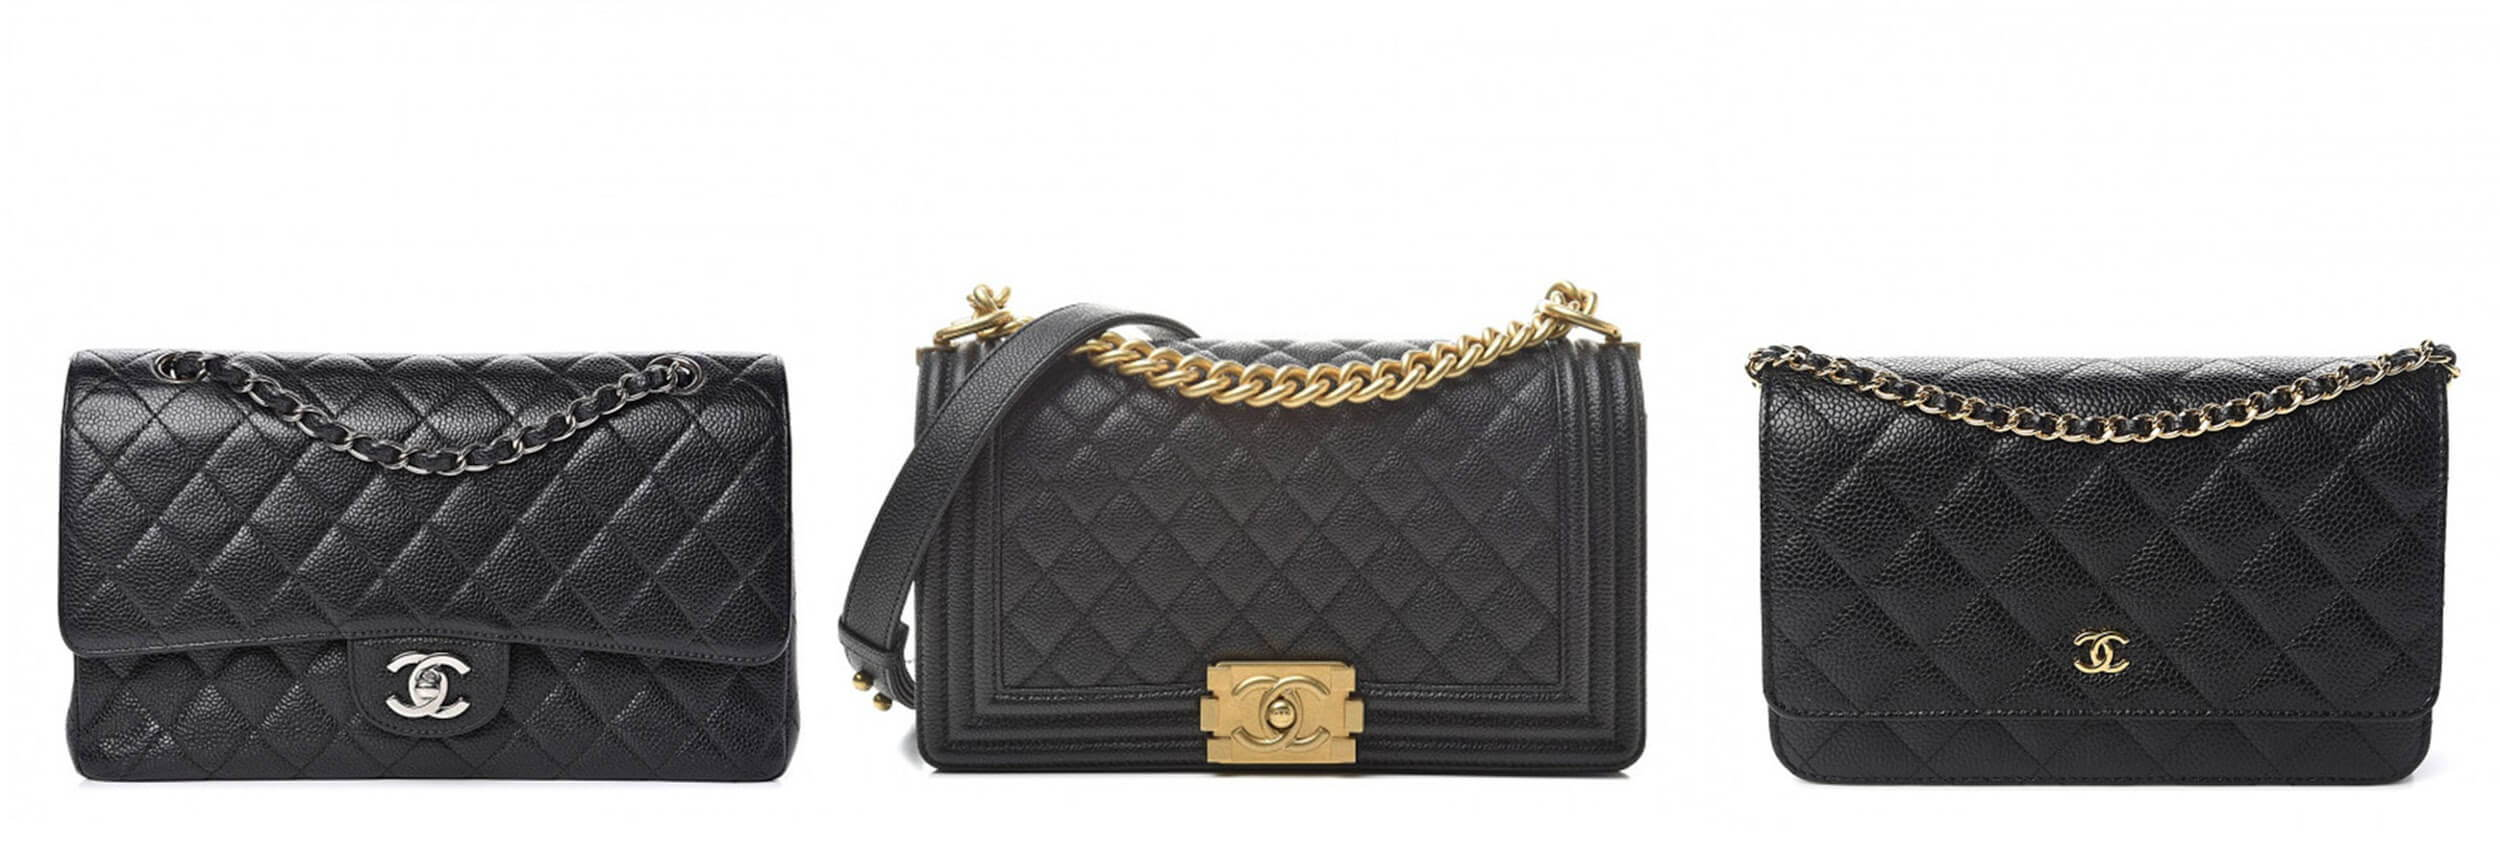 3 Chanel Bags: The Classic Flap, the Boy Bag and the Wallet-on-Chain.